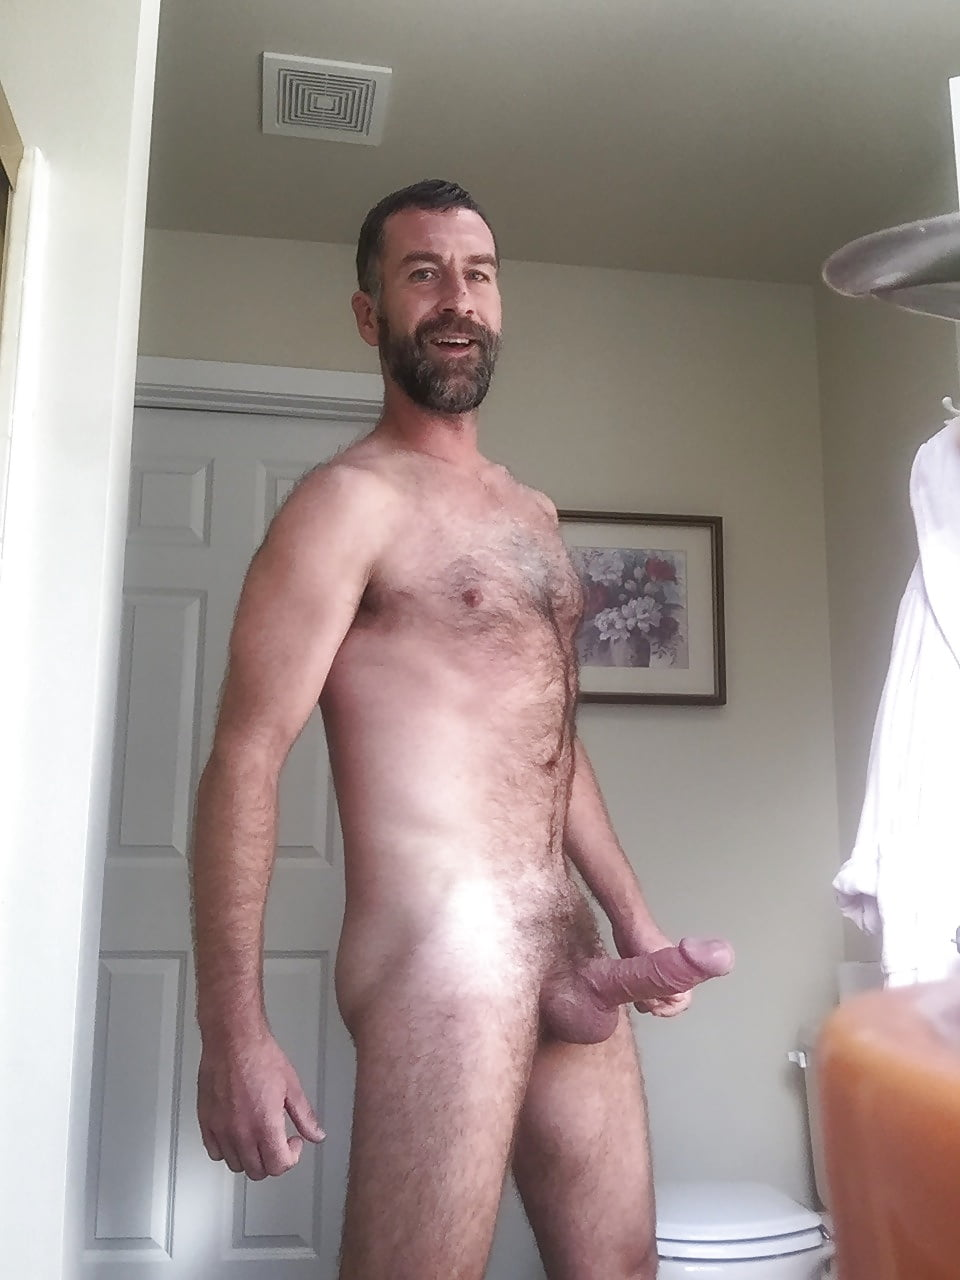 Amazonaboy Porno see and save as monster amateur cocks porn pict - 4crot